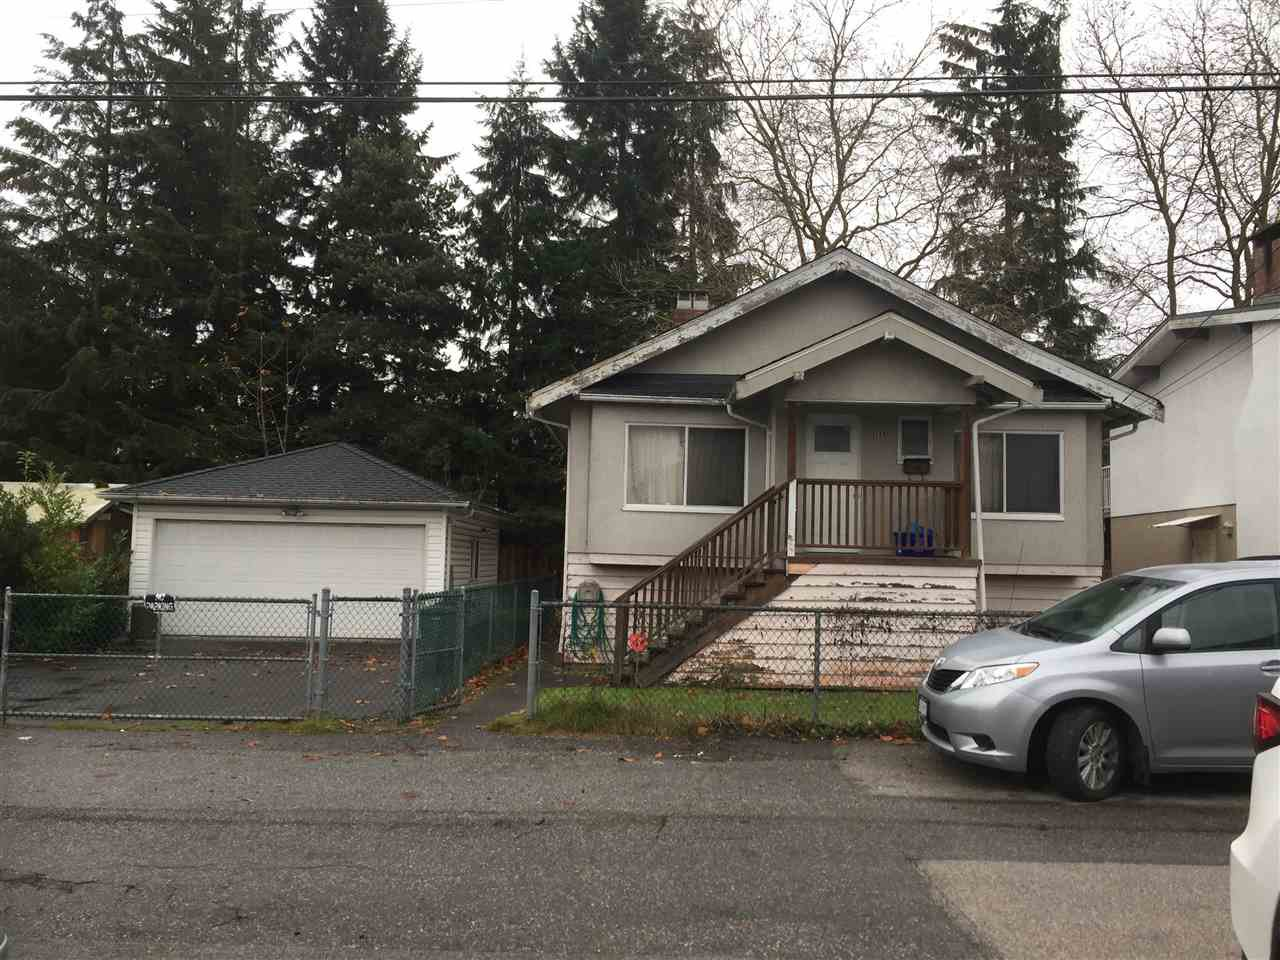 Main Photo: 4260 WATSON Street in Vancouver: Main House for sale (Vancouver East)  : MLS®# R2520592